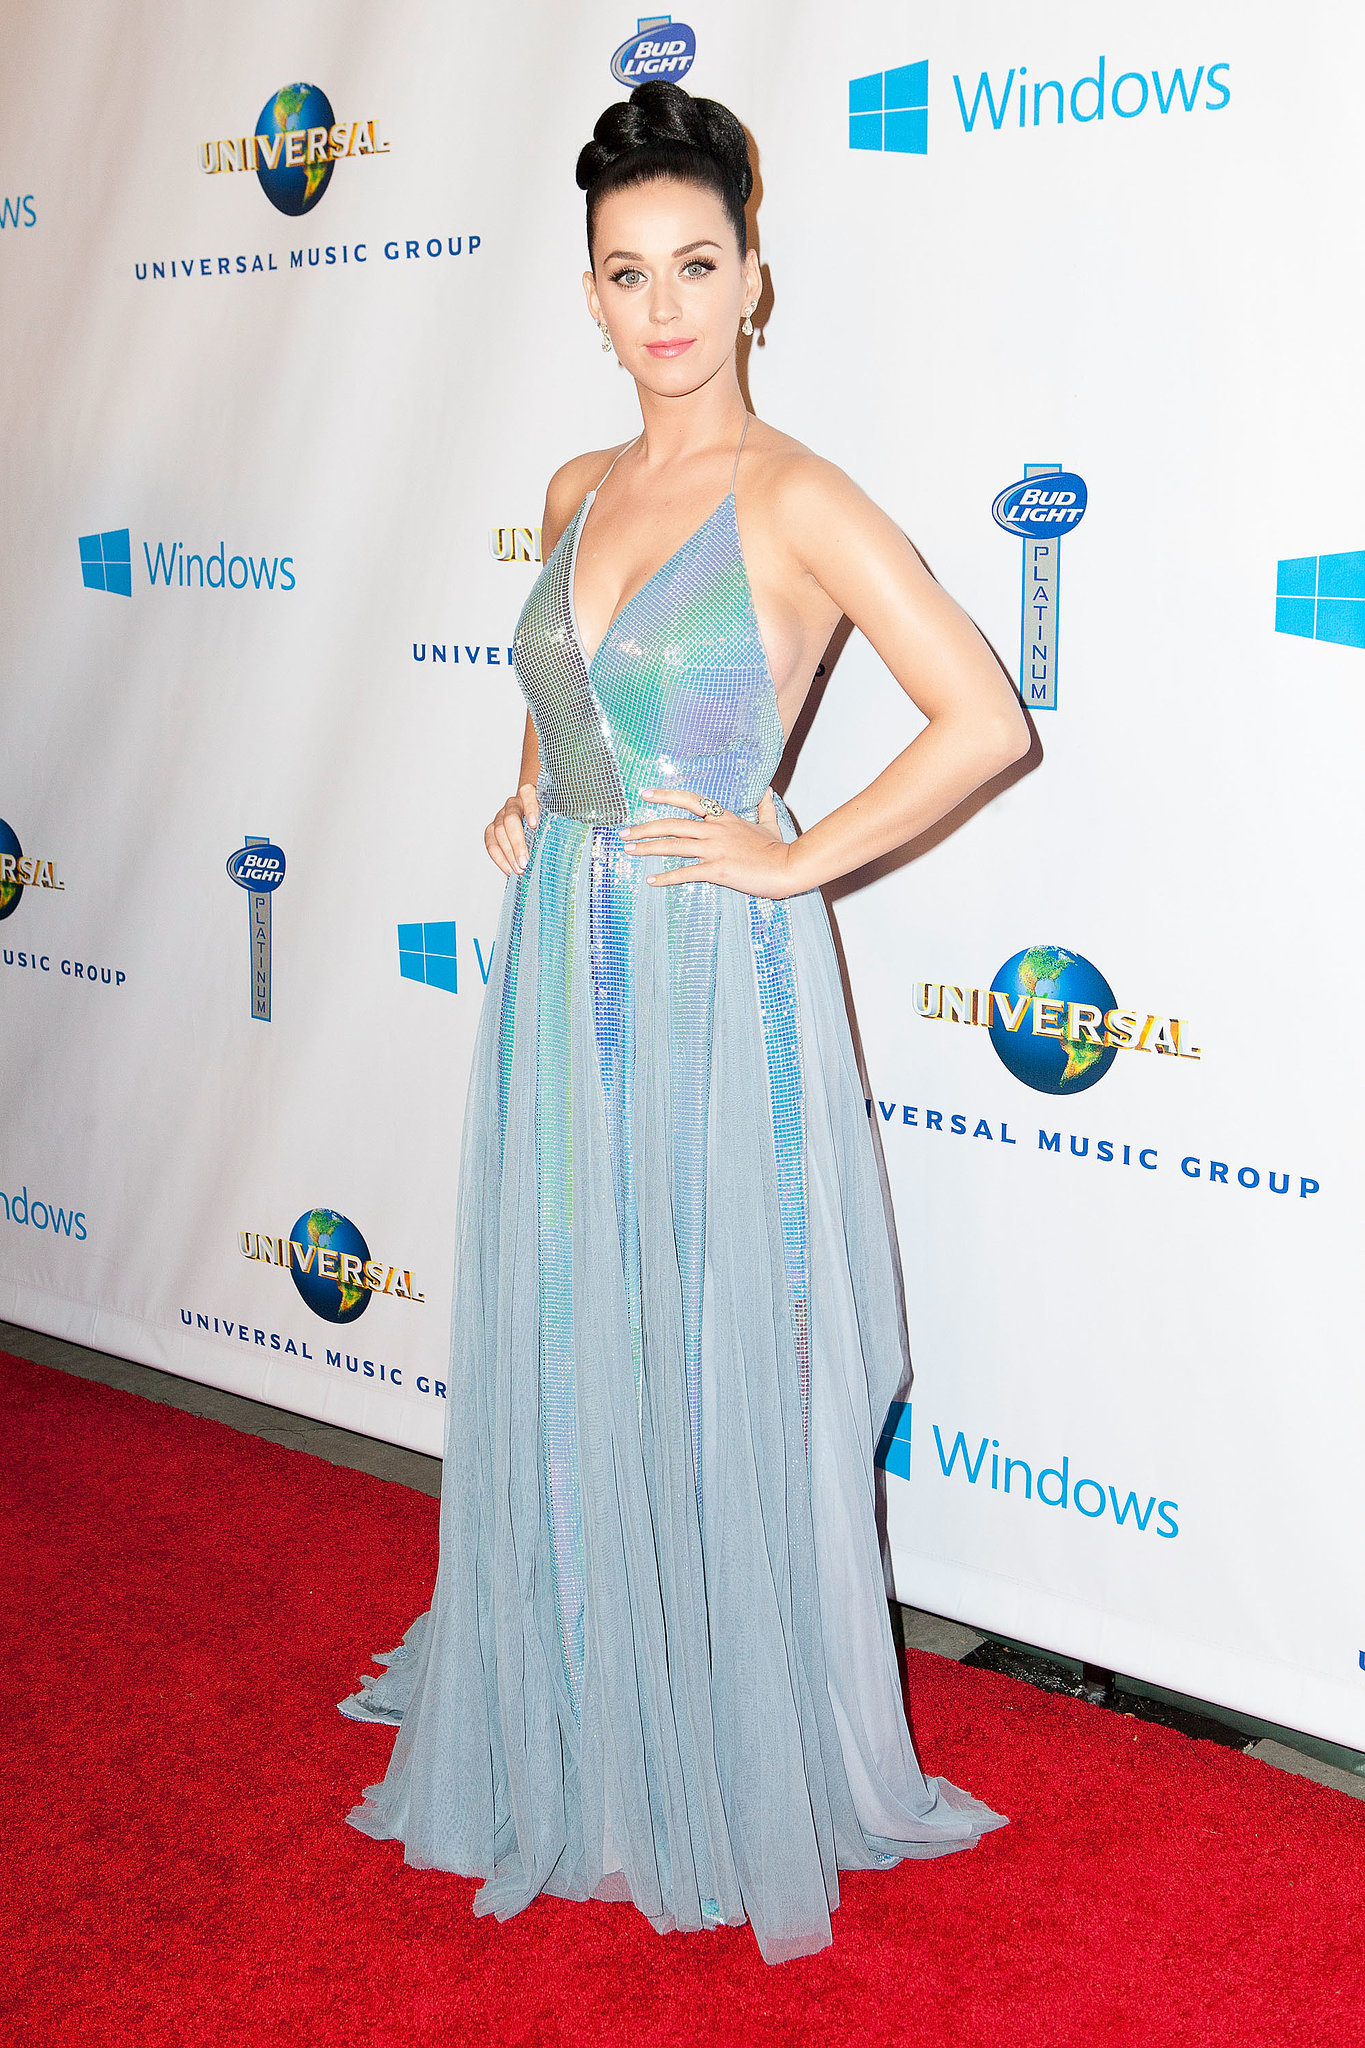 Katy Perry's Afterparty Look